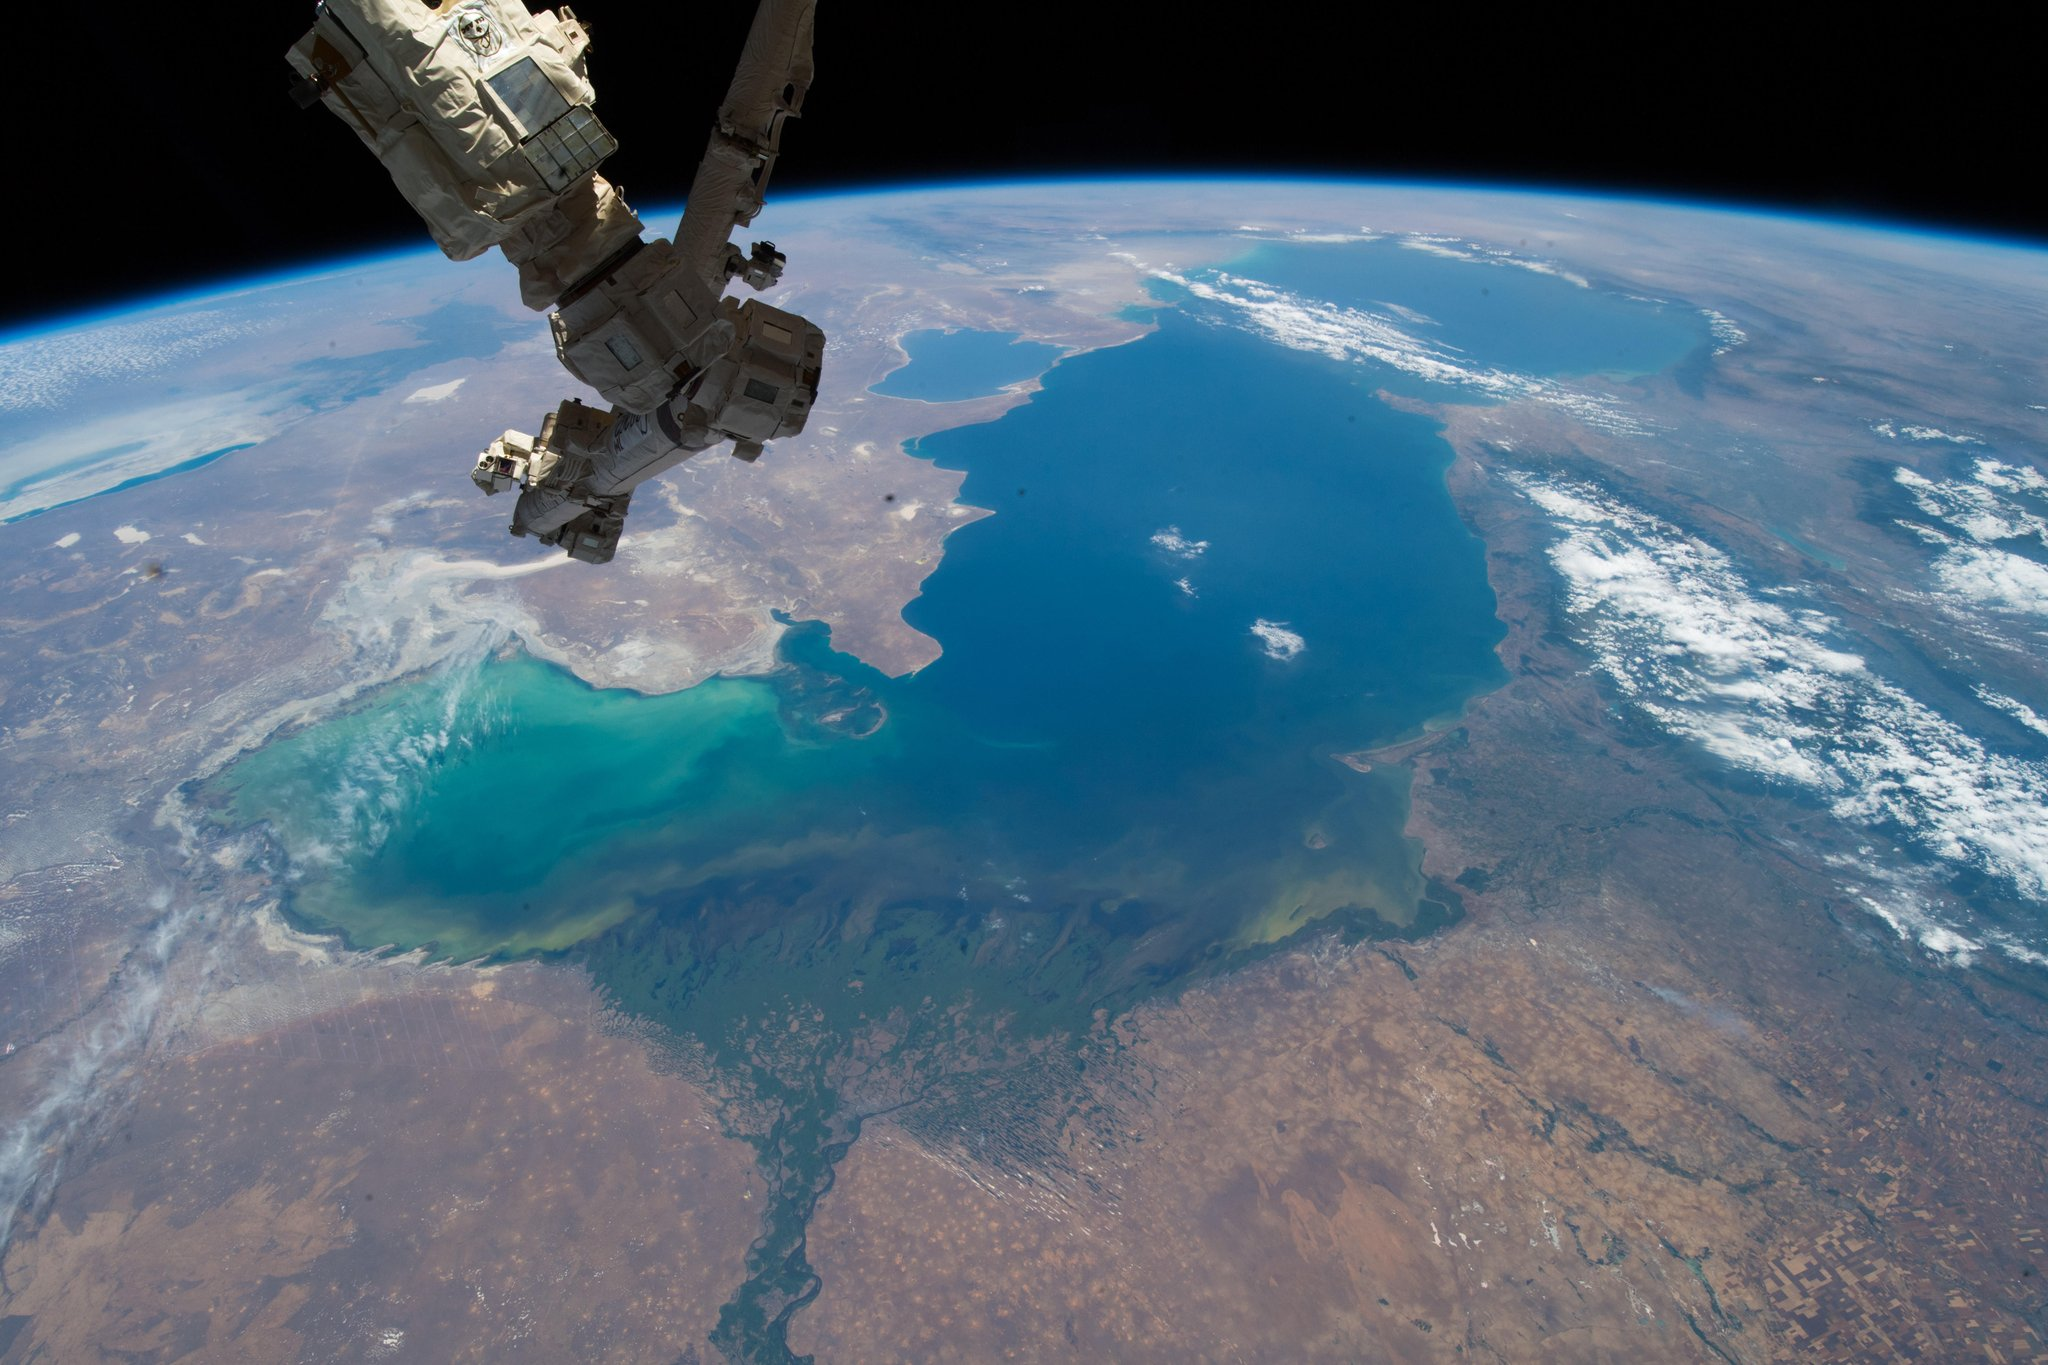 The Caspian Sea with the enormous Volga River delta on one side, and Iran on the other side. I would love to travel there one day...  (Photo & Caption: Alexander Gerst / NASA)